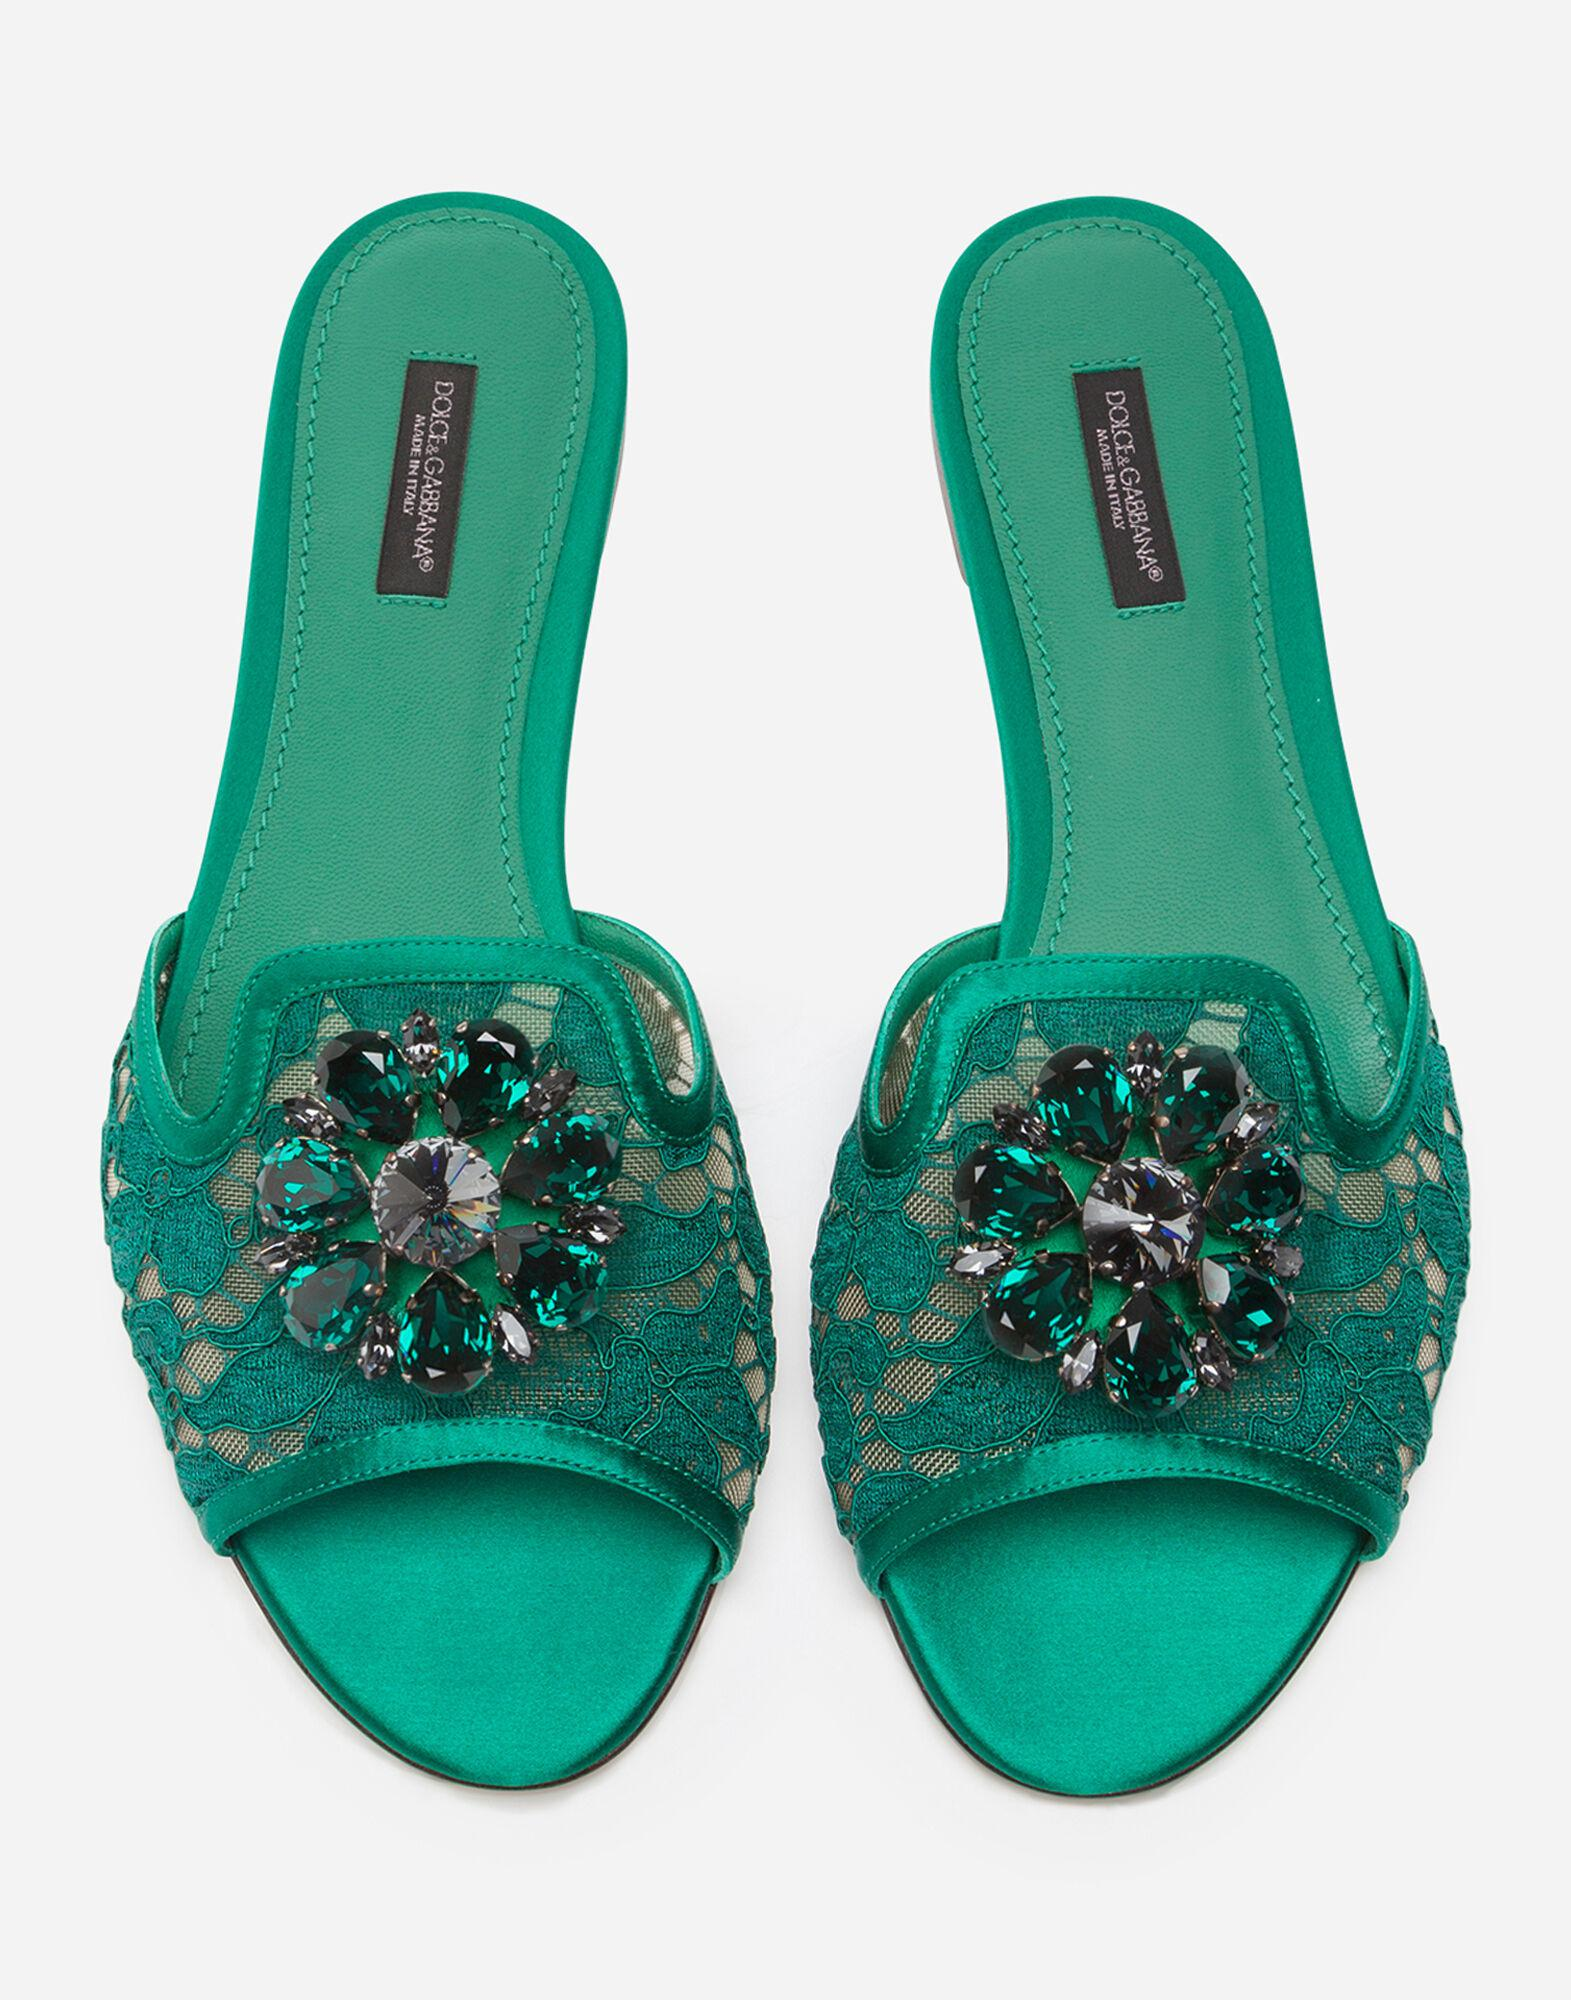 Lace slippers with crystals 3